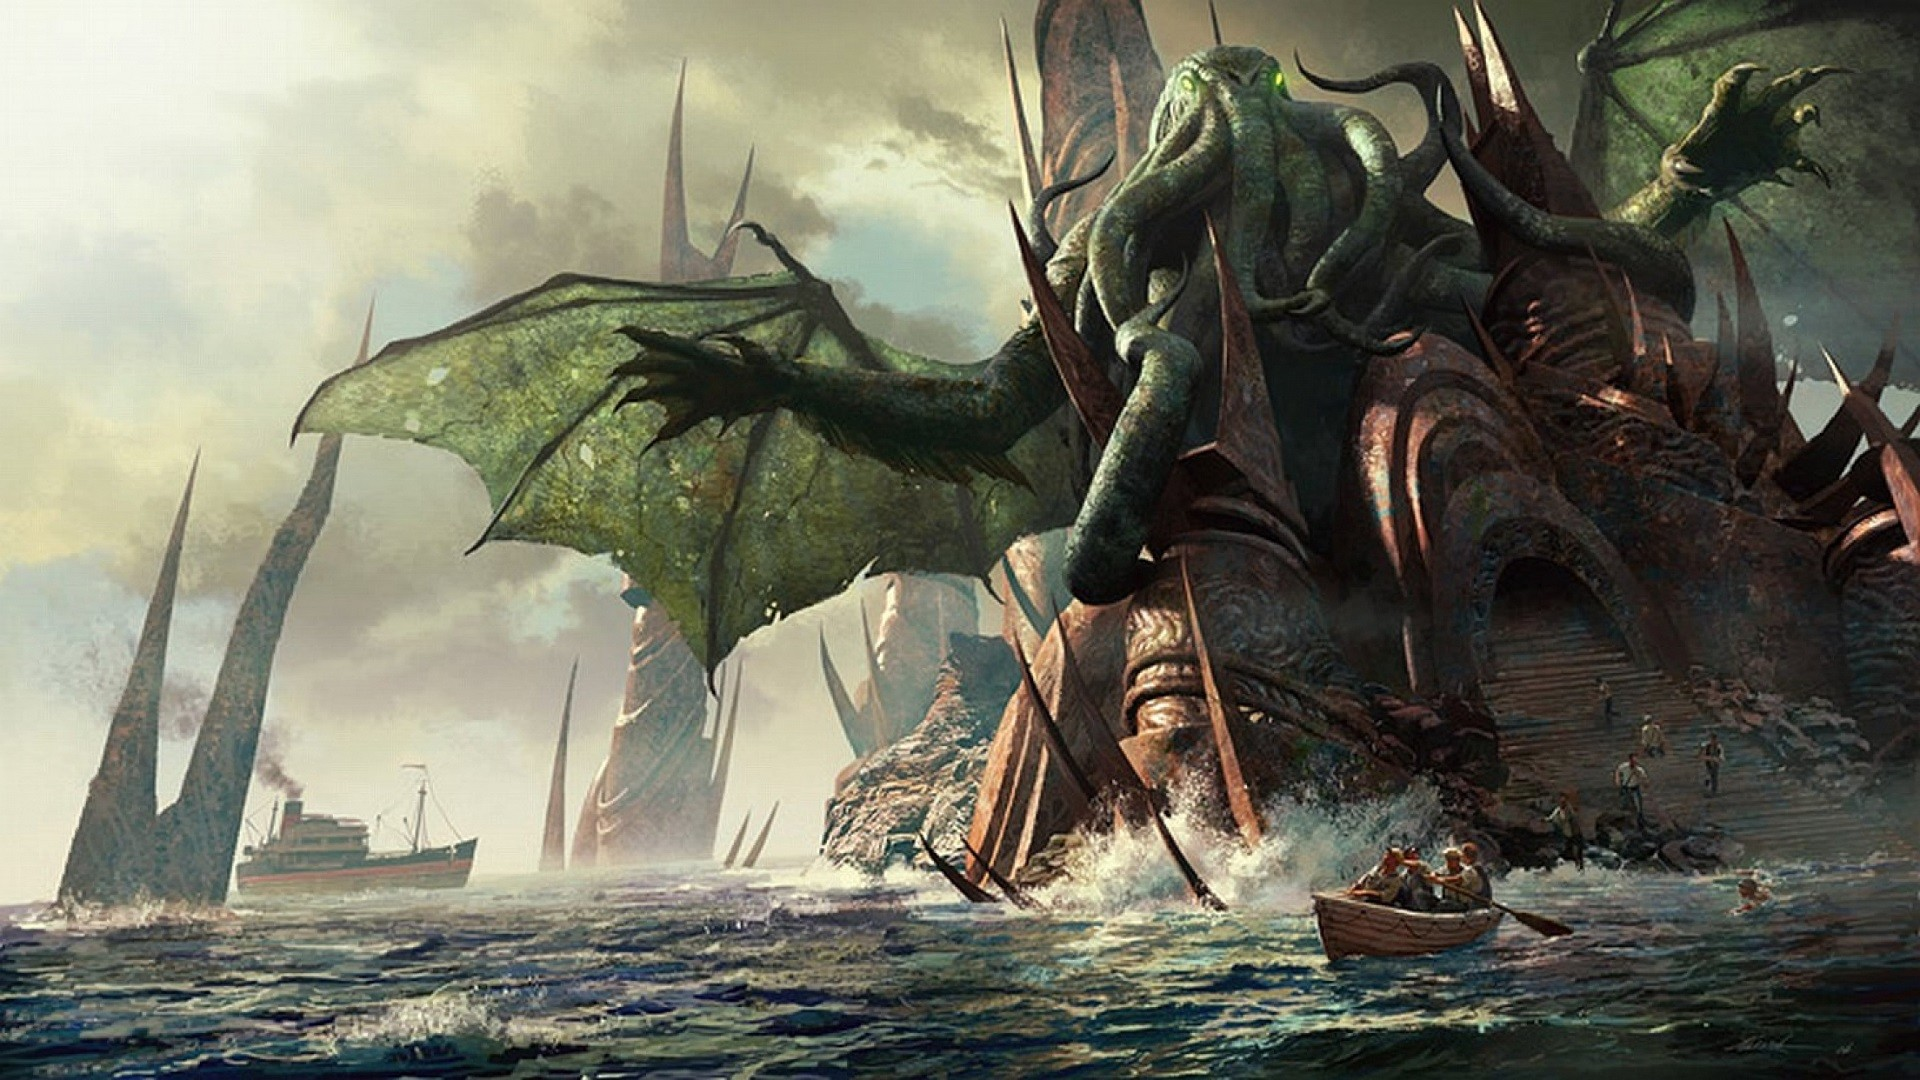 Res: 1920x1080, Cthulhu-Wallpaper-Images.jpg